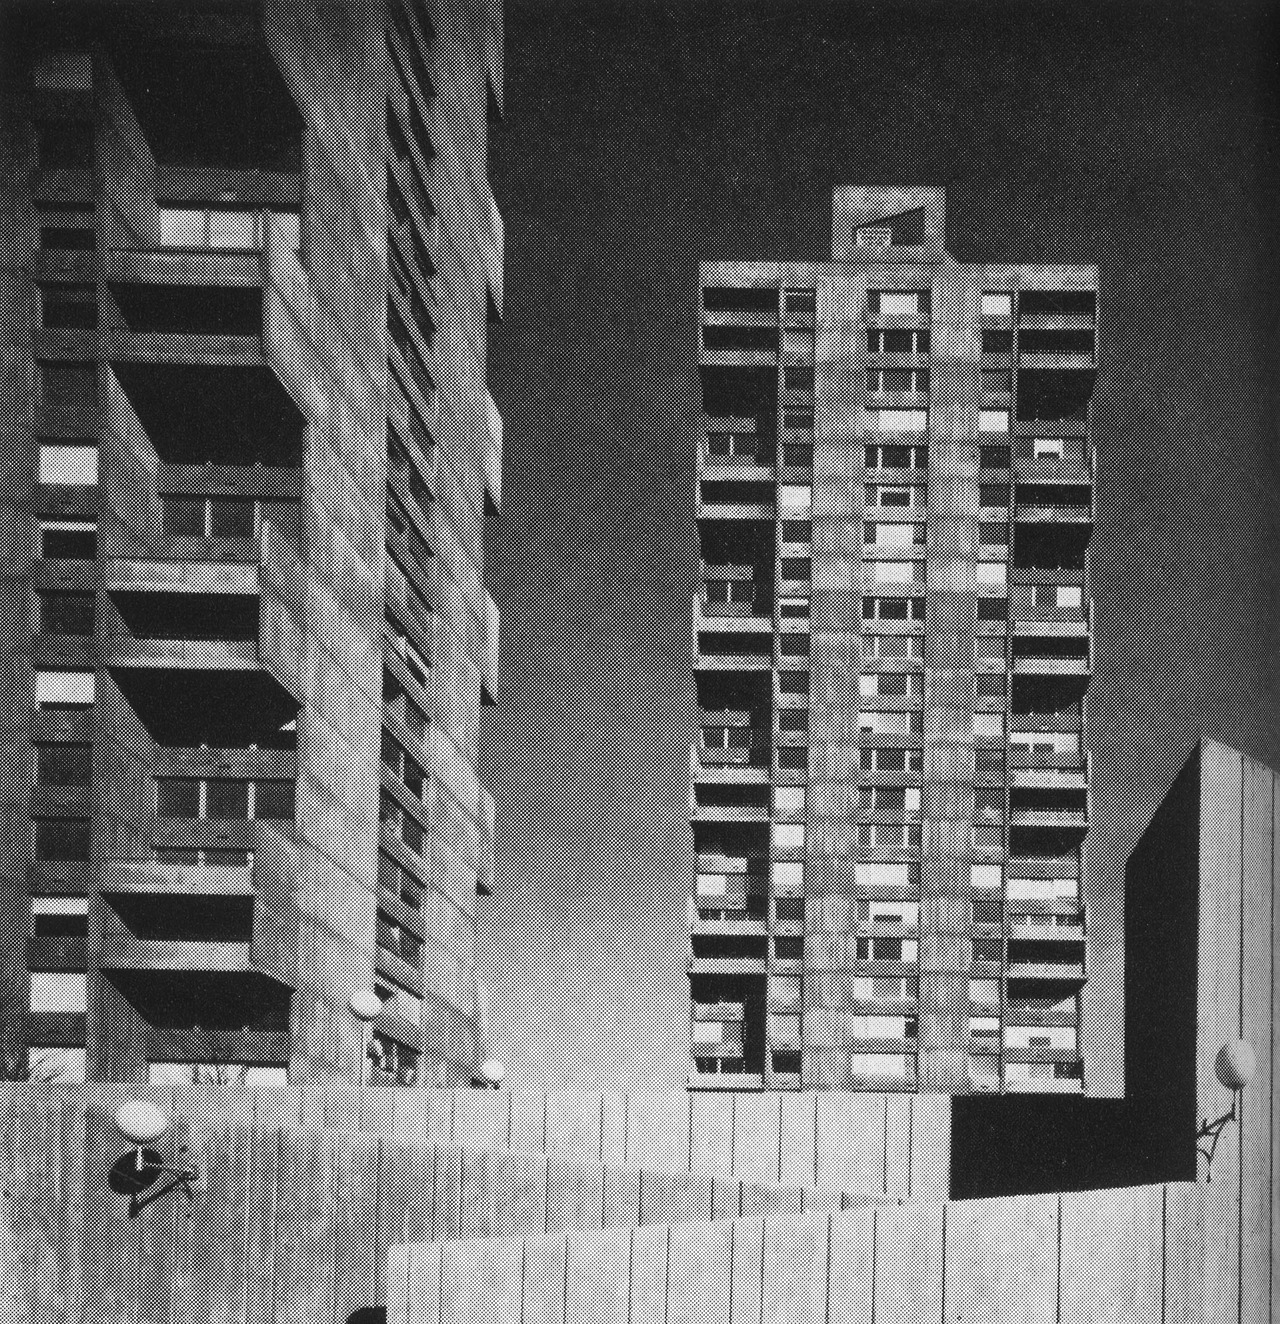 Chatham Towers, Manhattan, 1965 by Kelly & Gruzen